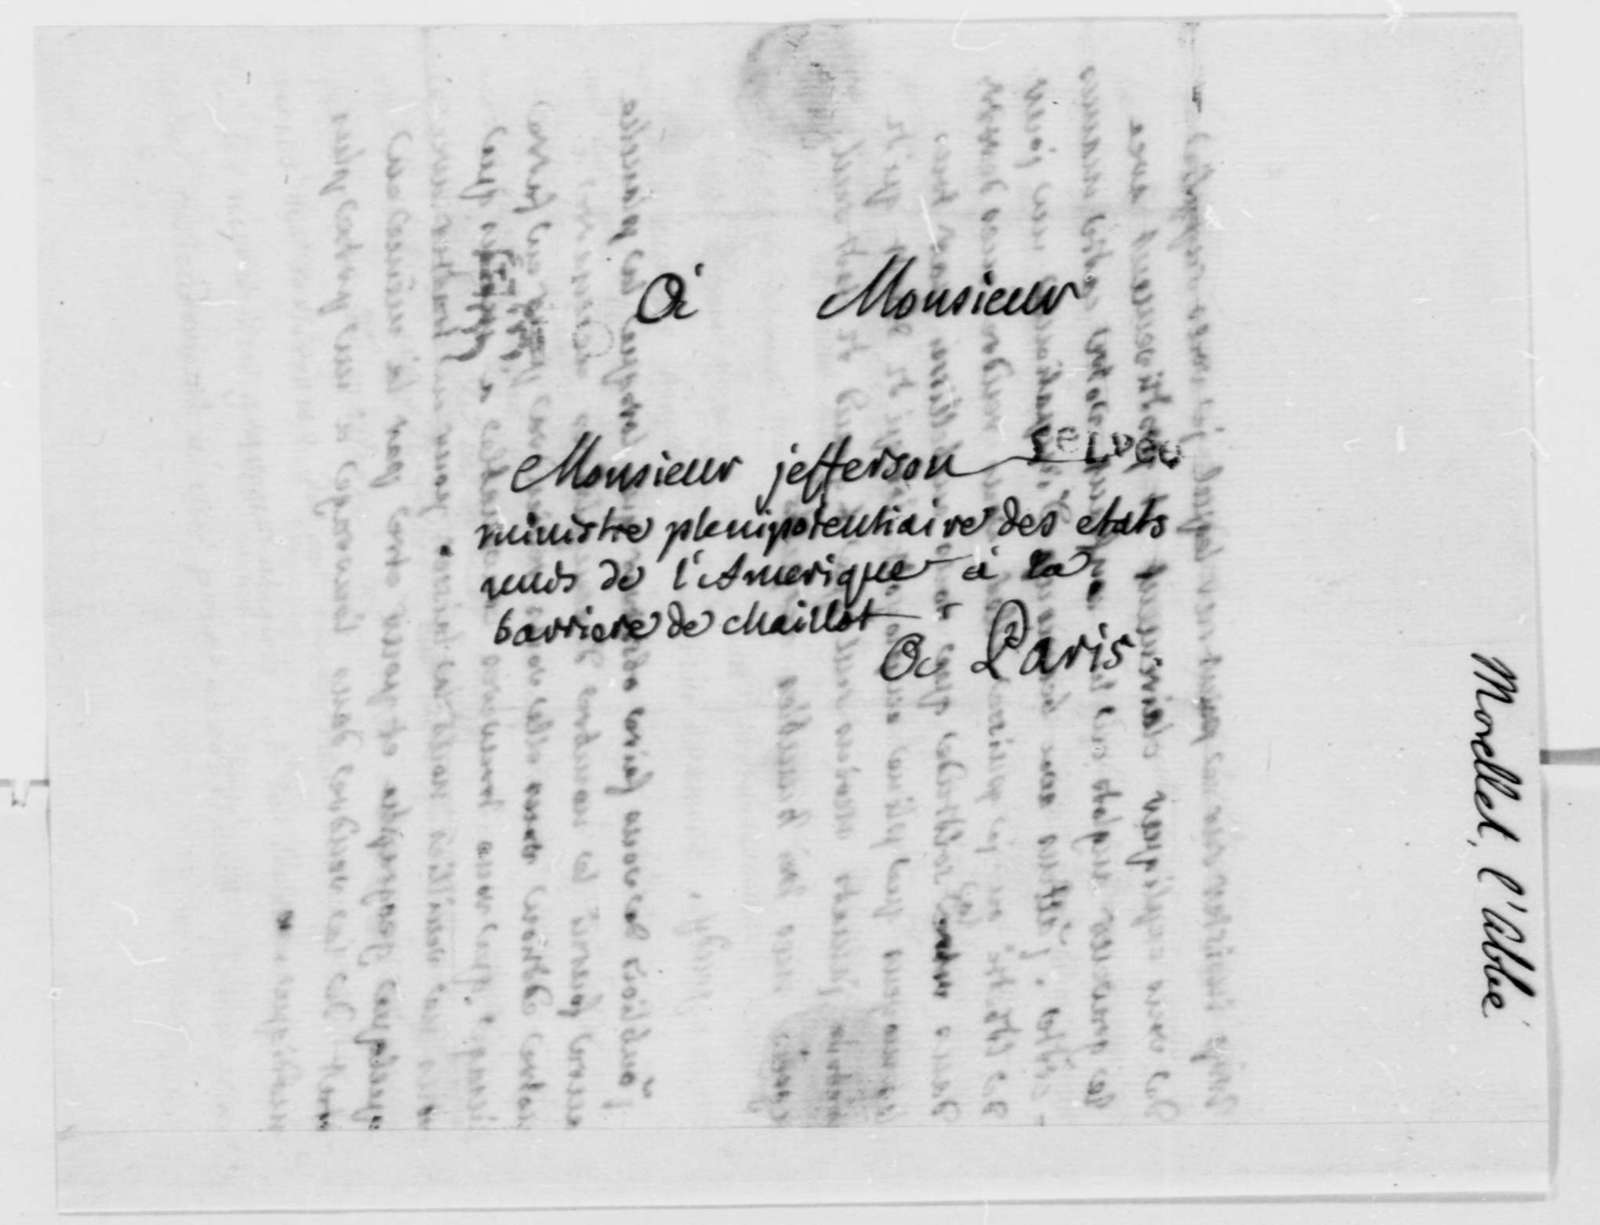 Andre Morellet to Thomas Jefferson, August 10, 1786, in French